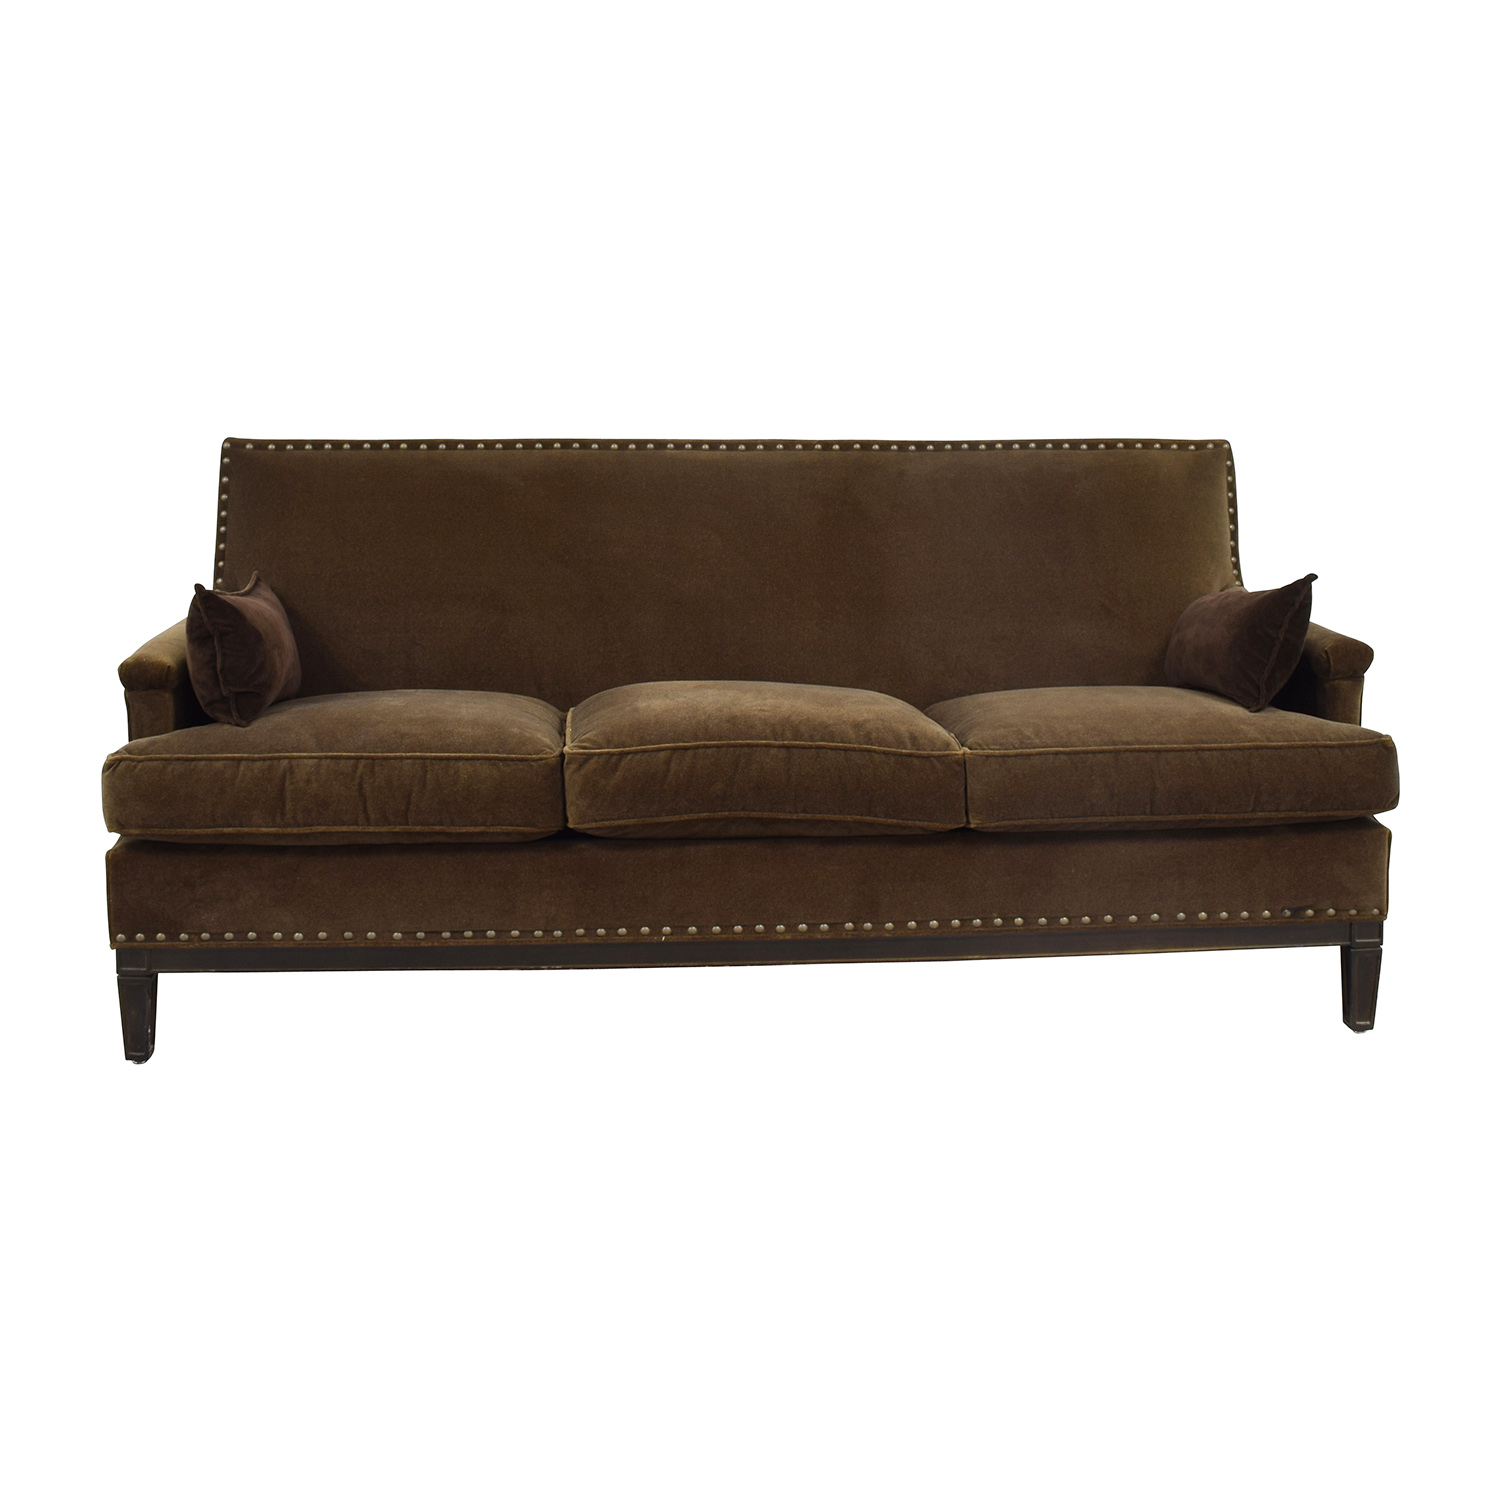 Robin Bruce Simone Brown Sofa sale